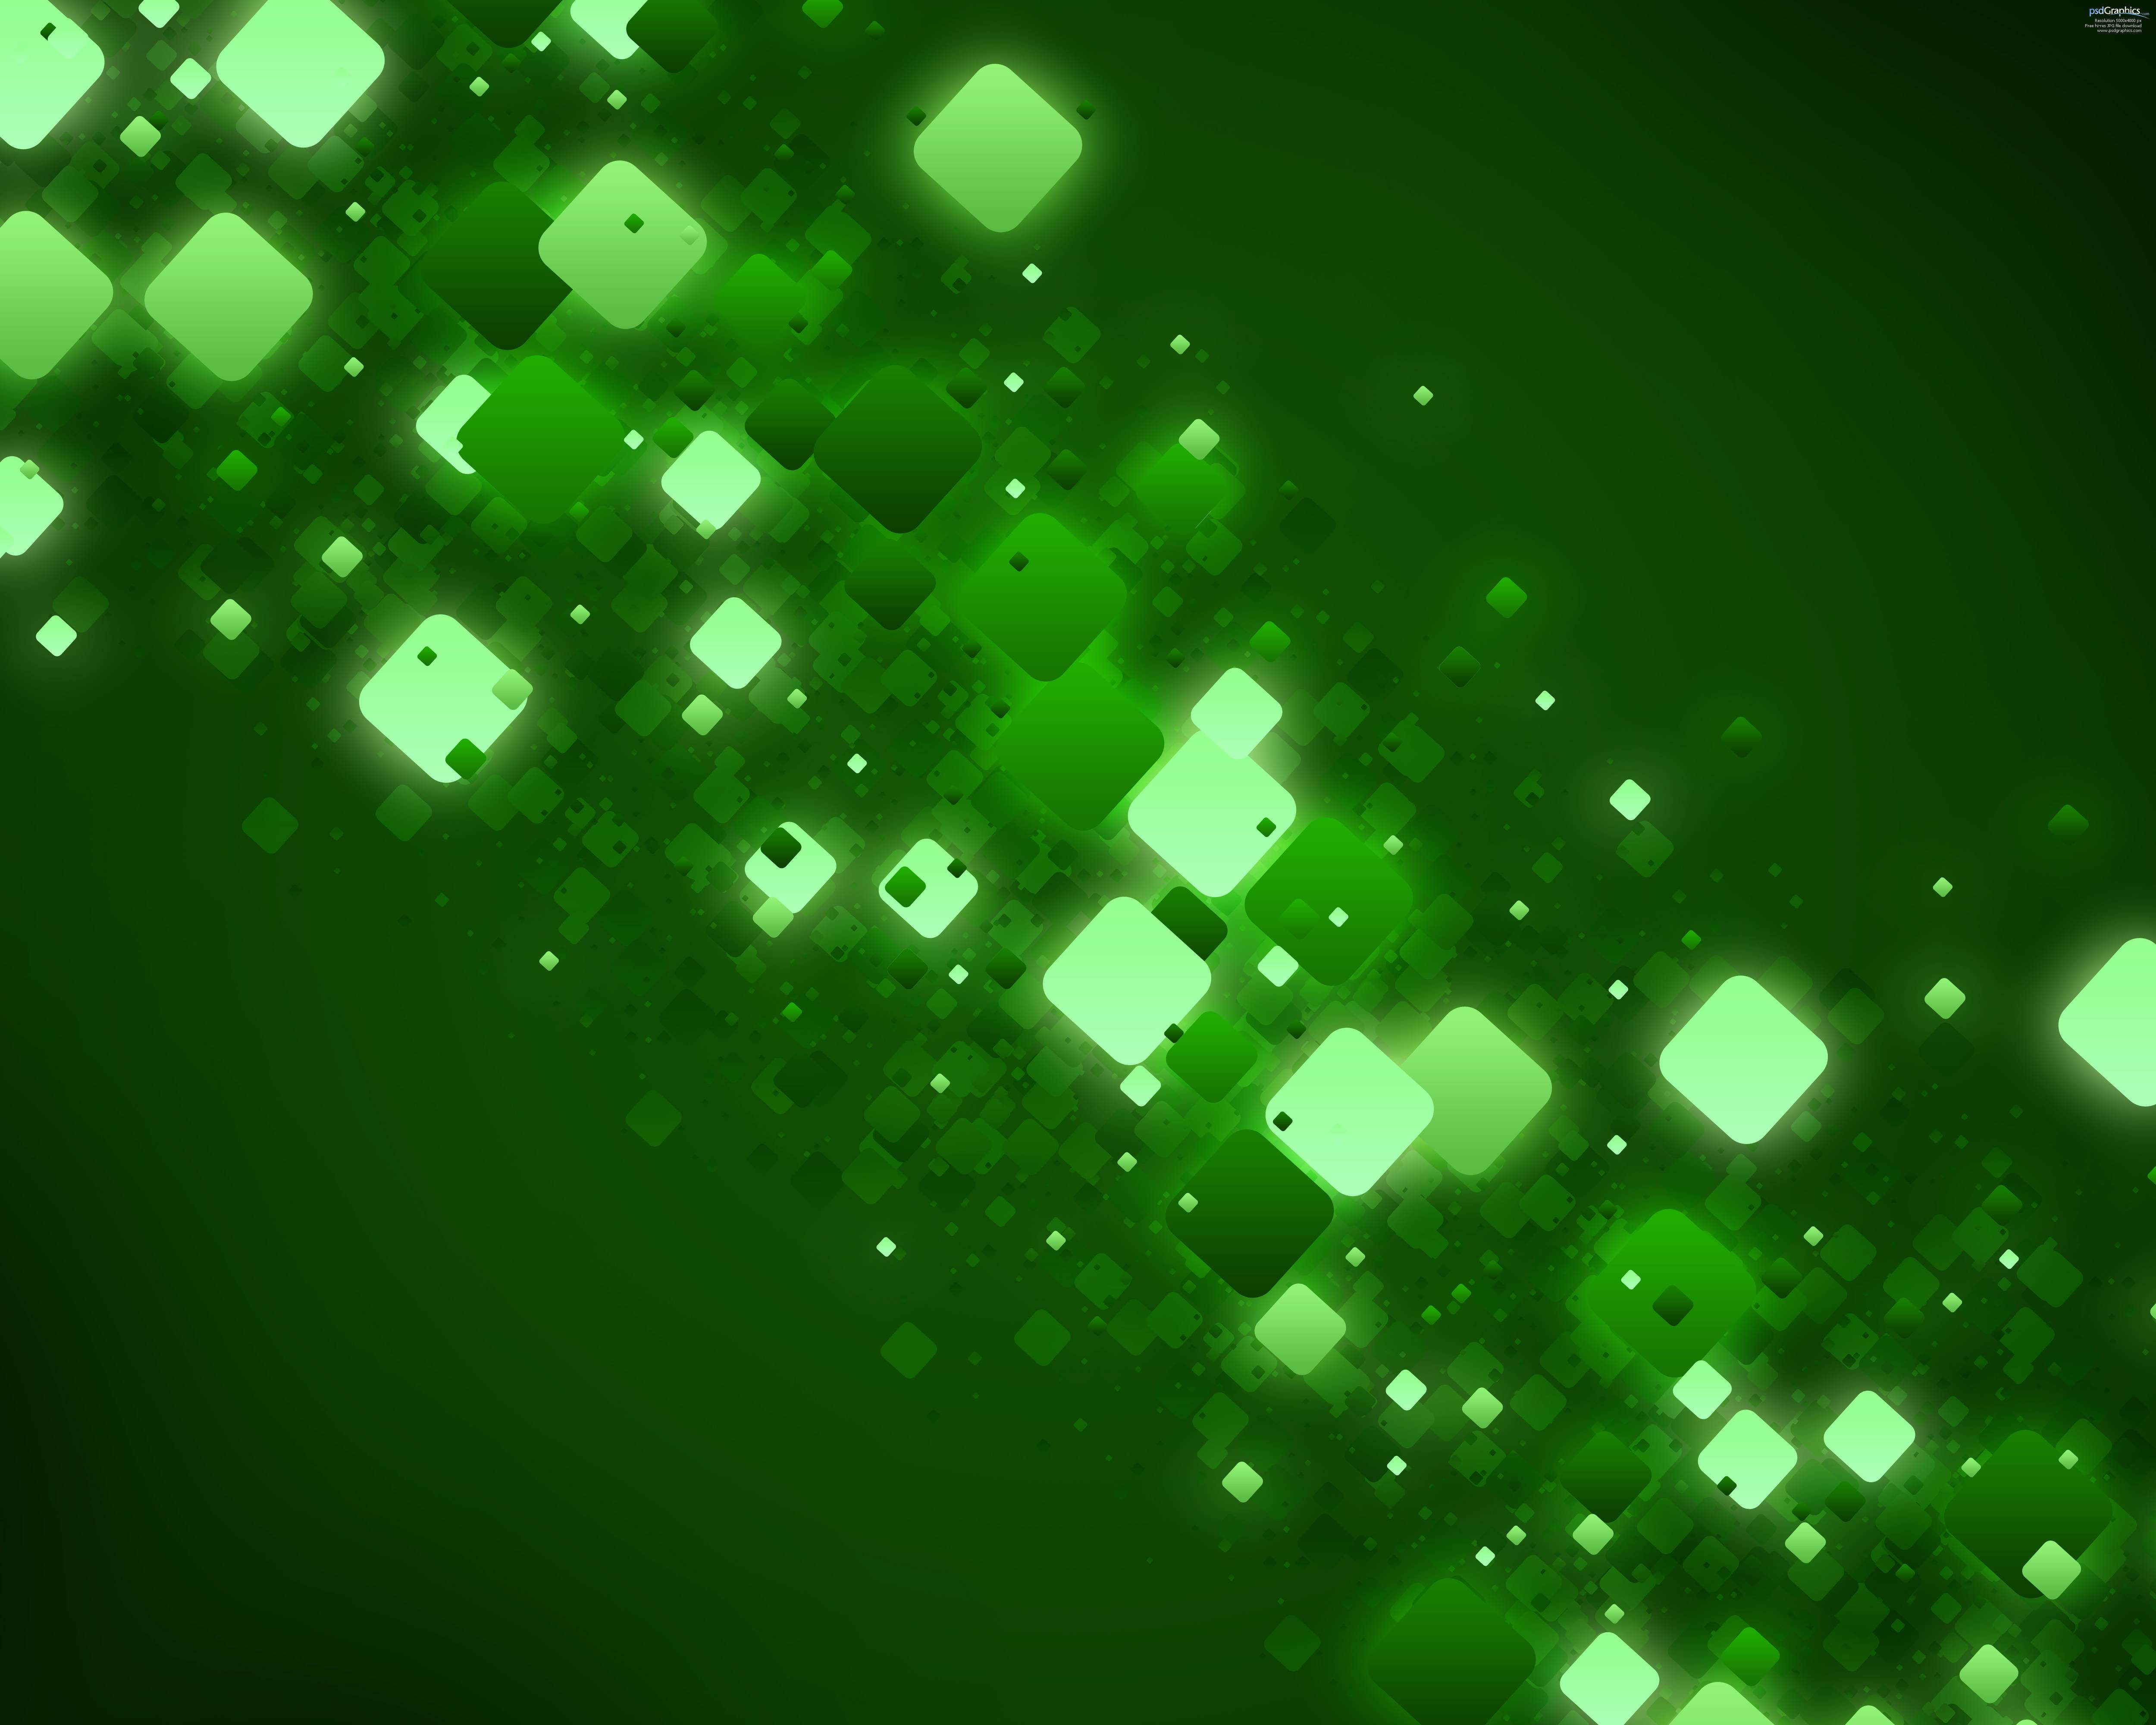 Green Backgrounds Wallpapers 5000x4000